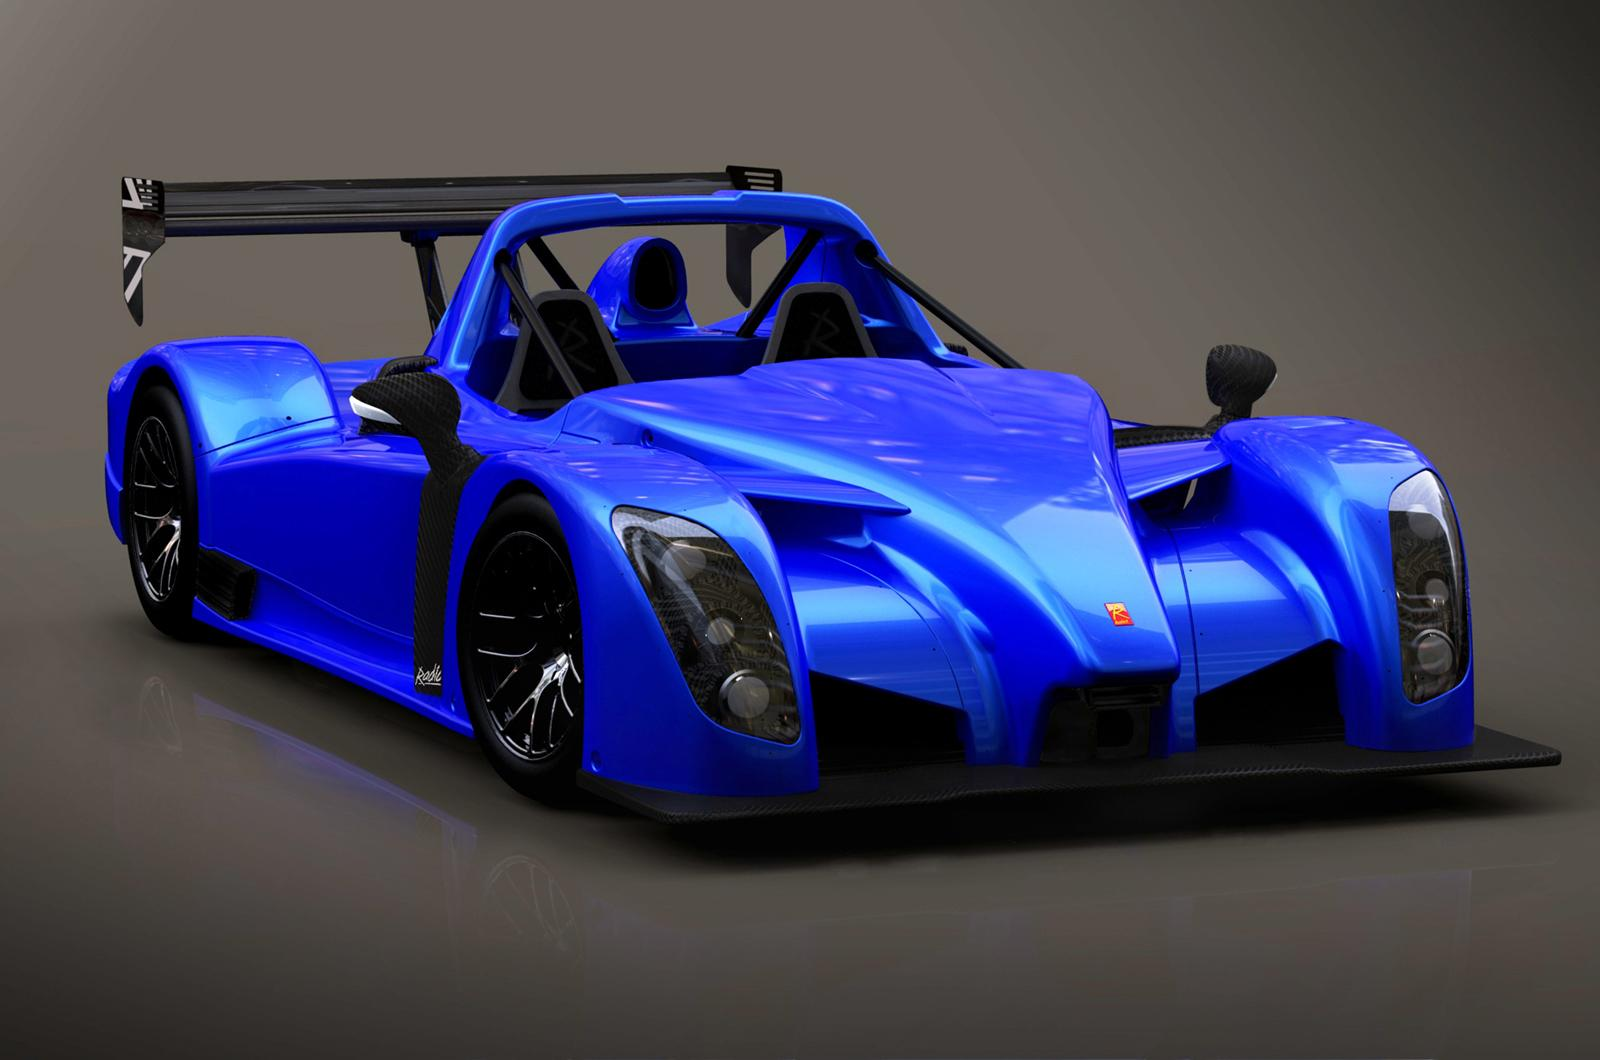 2015 Radical SR8 RSX Review - Top Speed